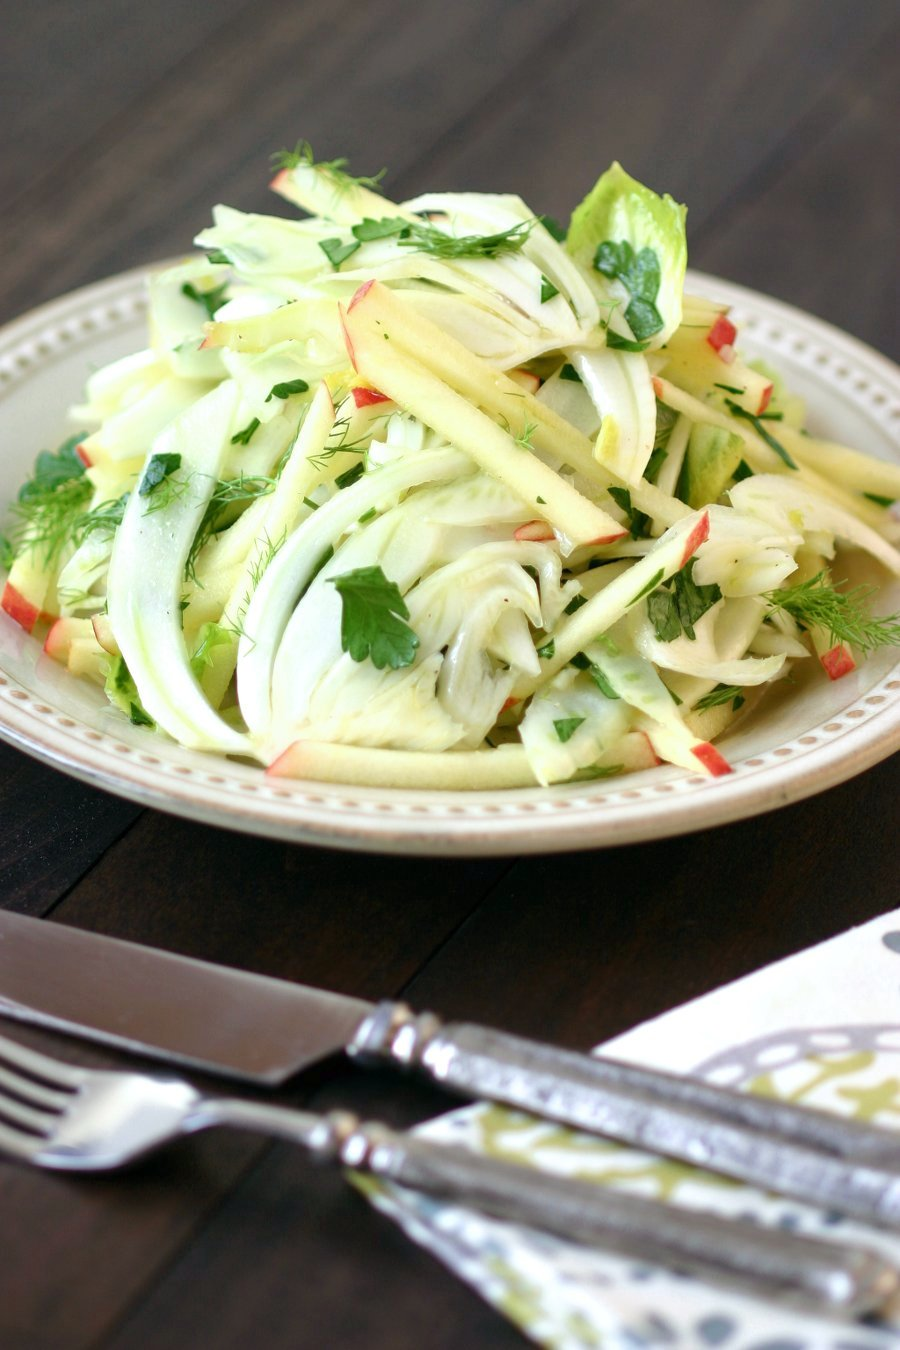 This light, crunchy, and refreshing recipe for Fennel Apple Salad with Endive combines fragrant fresh fennel with sweet-tart apples.